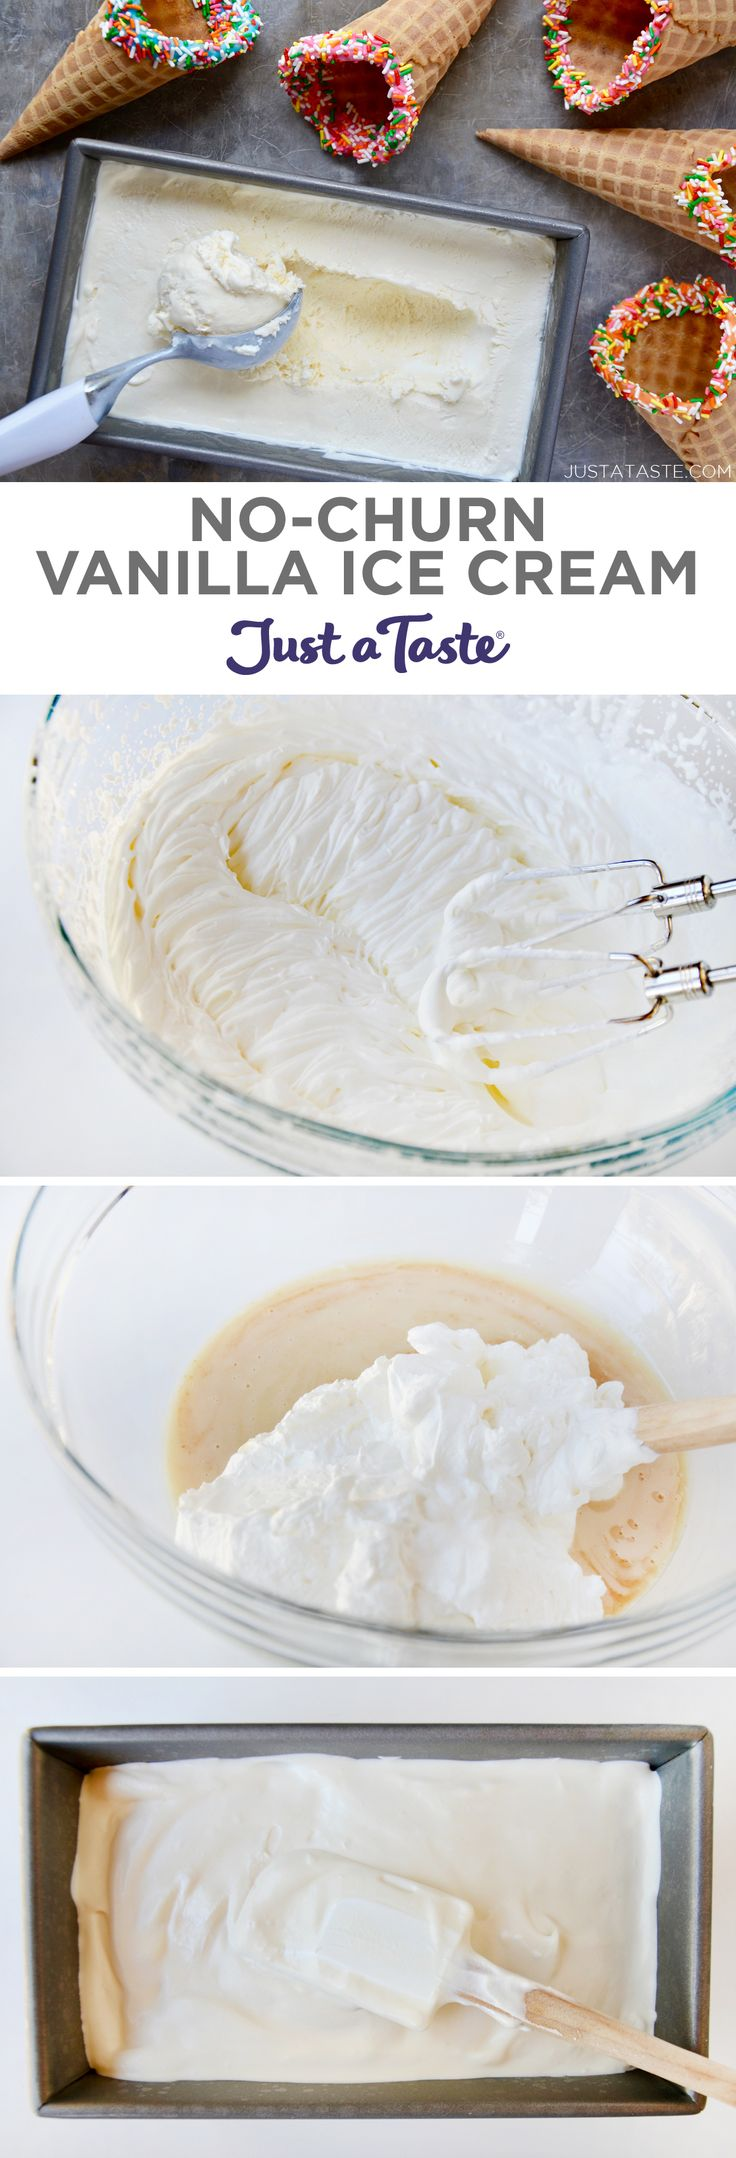 No-Churn Vanilla Ice Cream recipe from justataste.com #recipe #nochurnicecream #summer @justataste